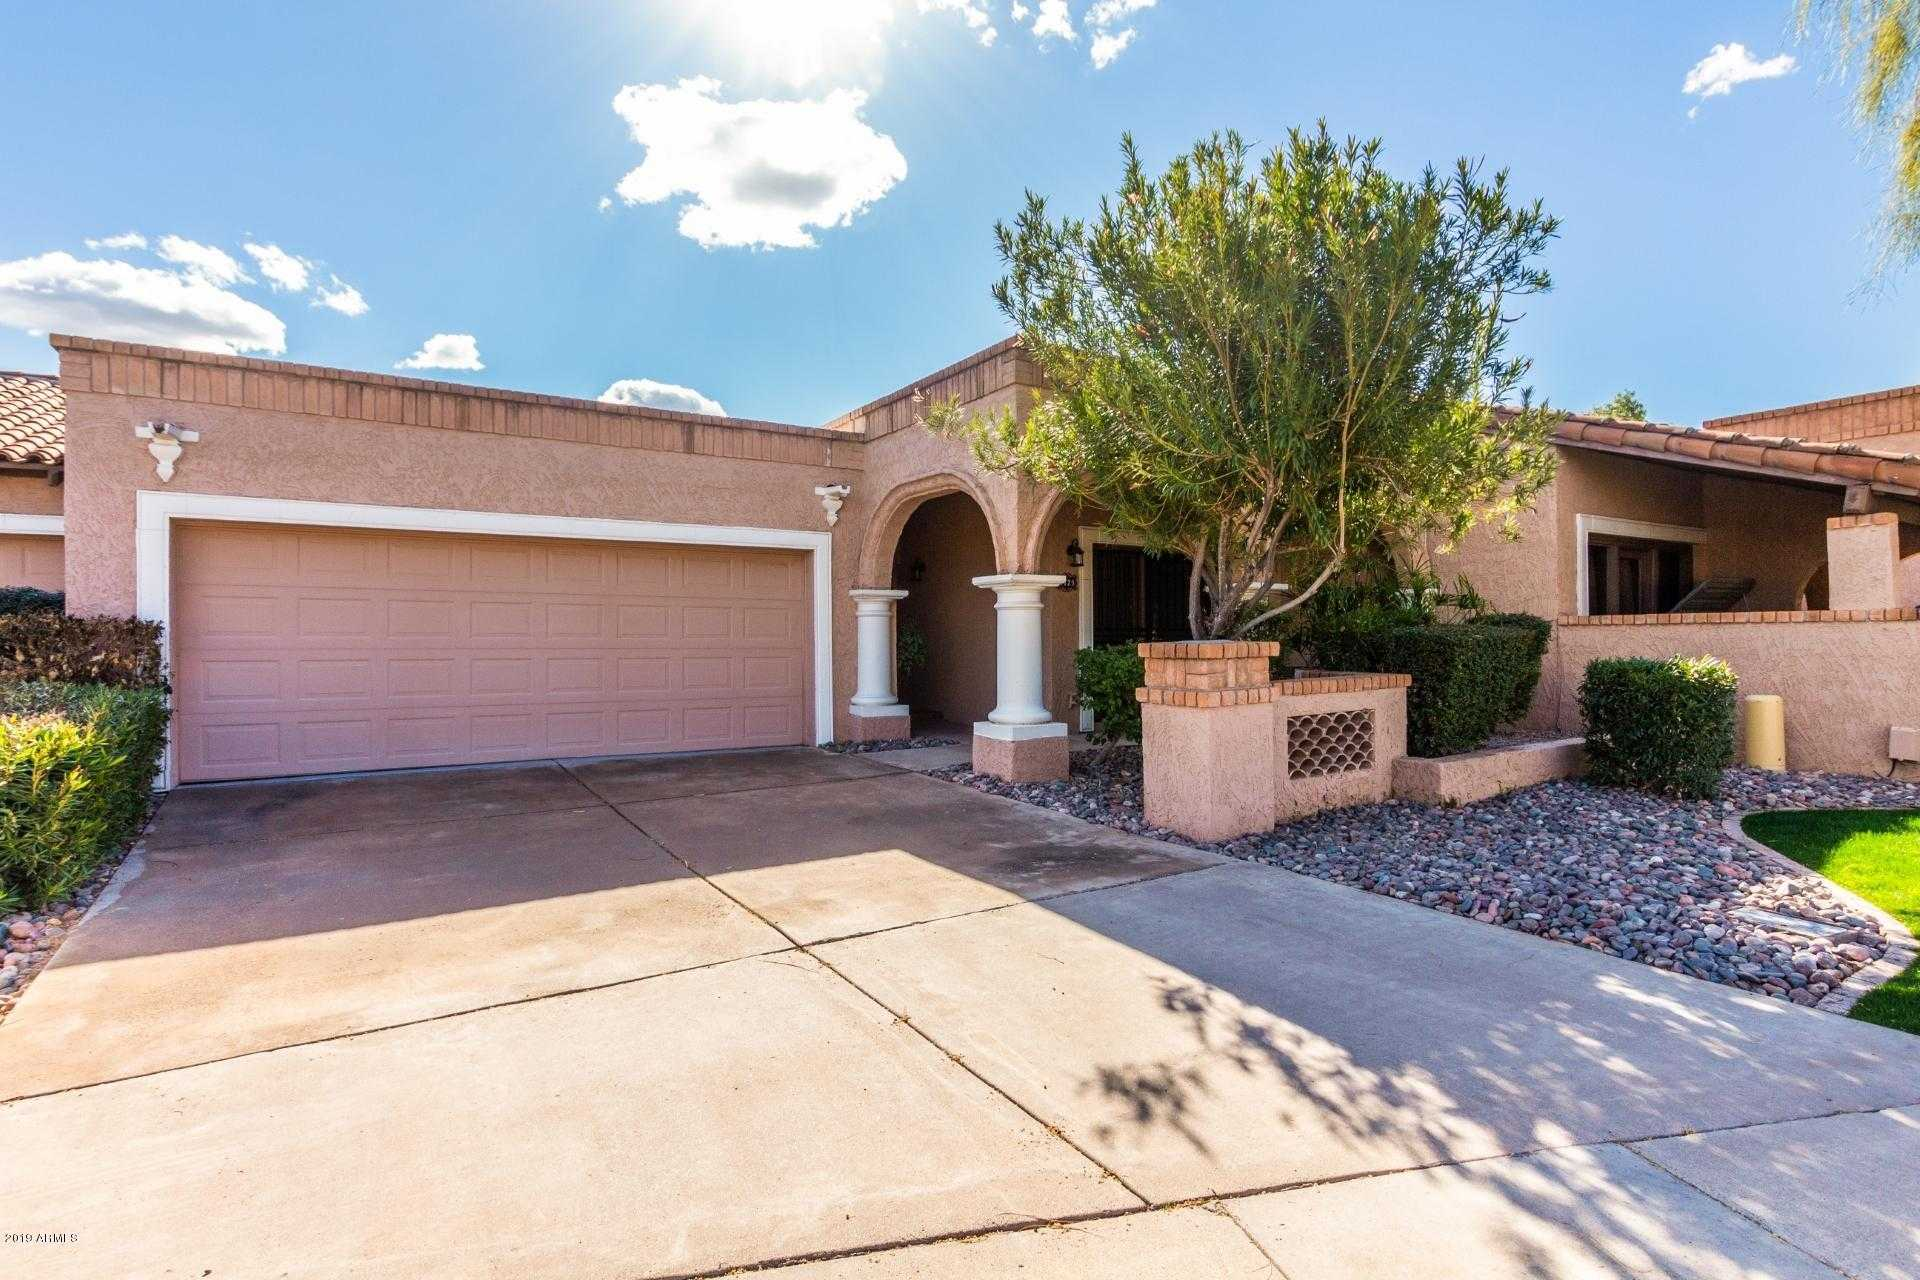 $459,000 - 2Br/2Ba -  for Sale in Santa Fe Subdivision Unit Two Lot 1-242 & Tr A-g, Scottsdale